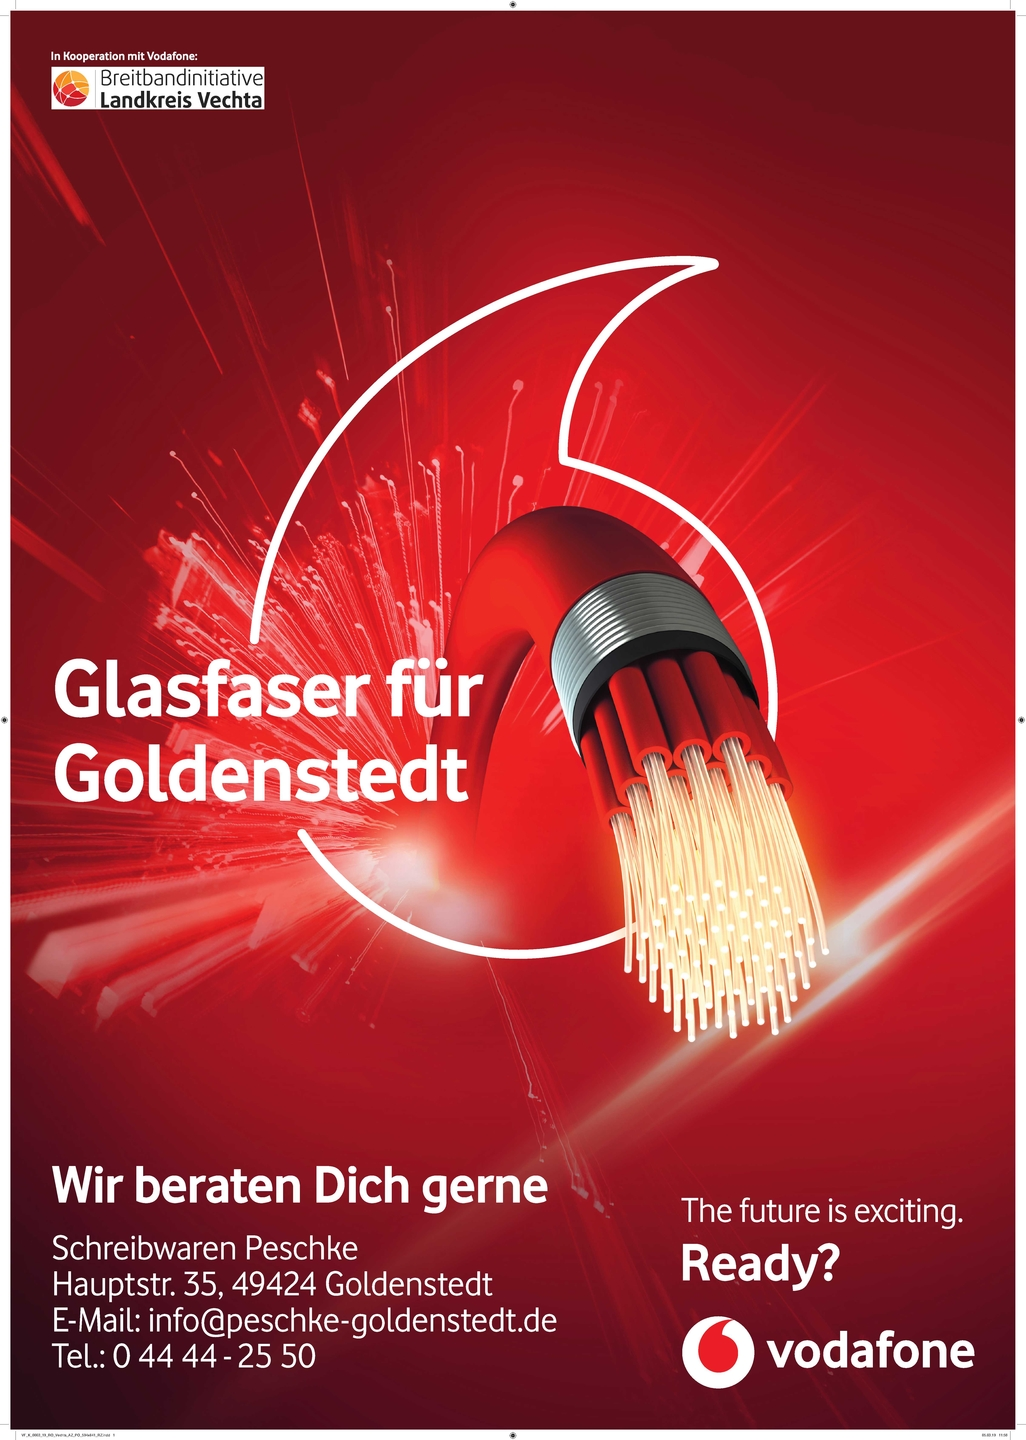 Goldenstedt Glasfaser